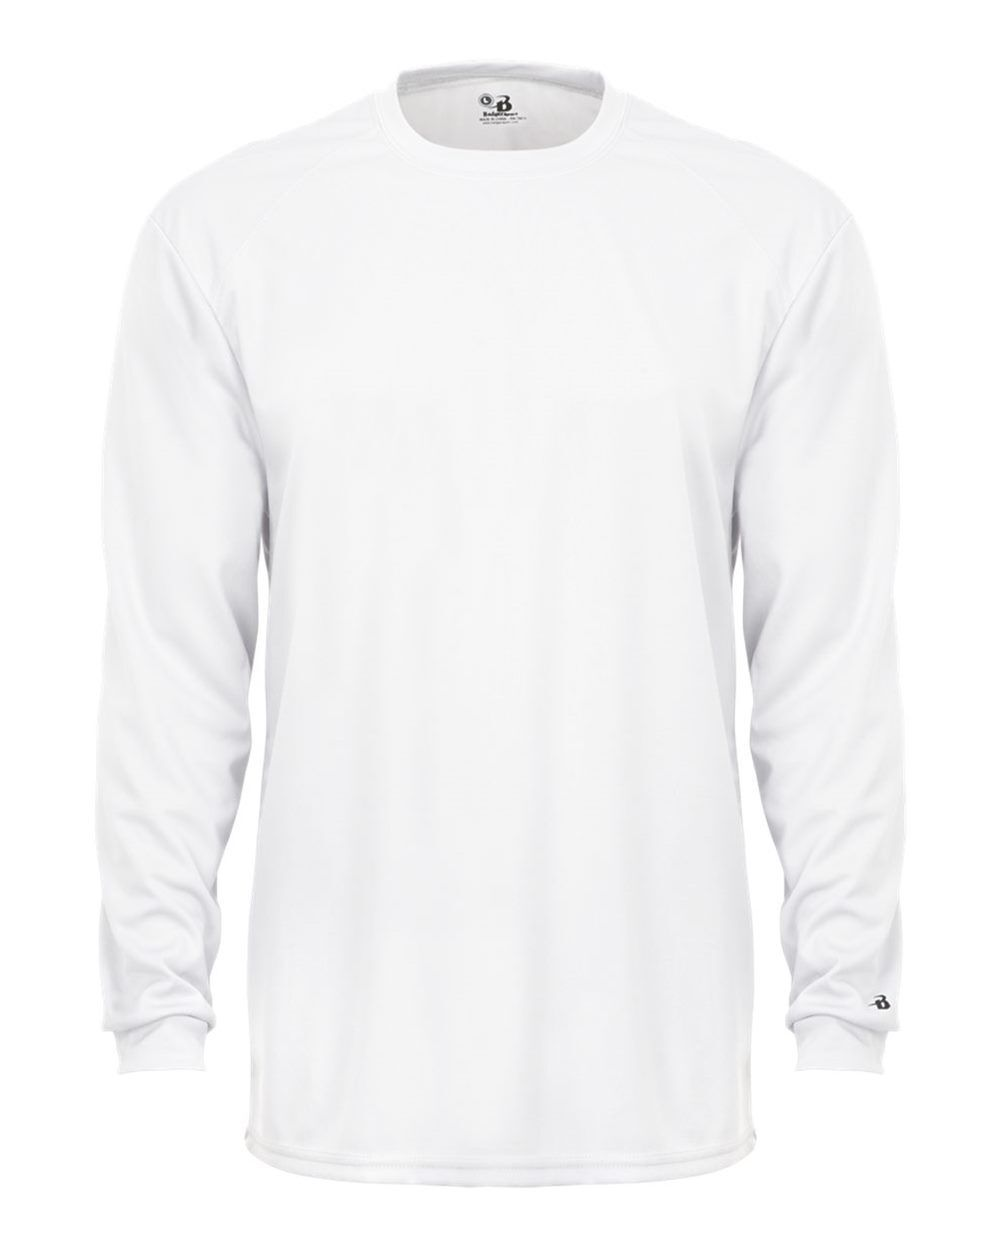 05571ec2a Details about Badger Sport Youth B-Dry Core Long-Sleeve Performance  T-Shirt. 2104